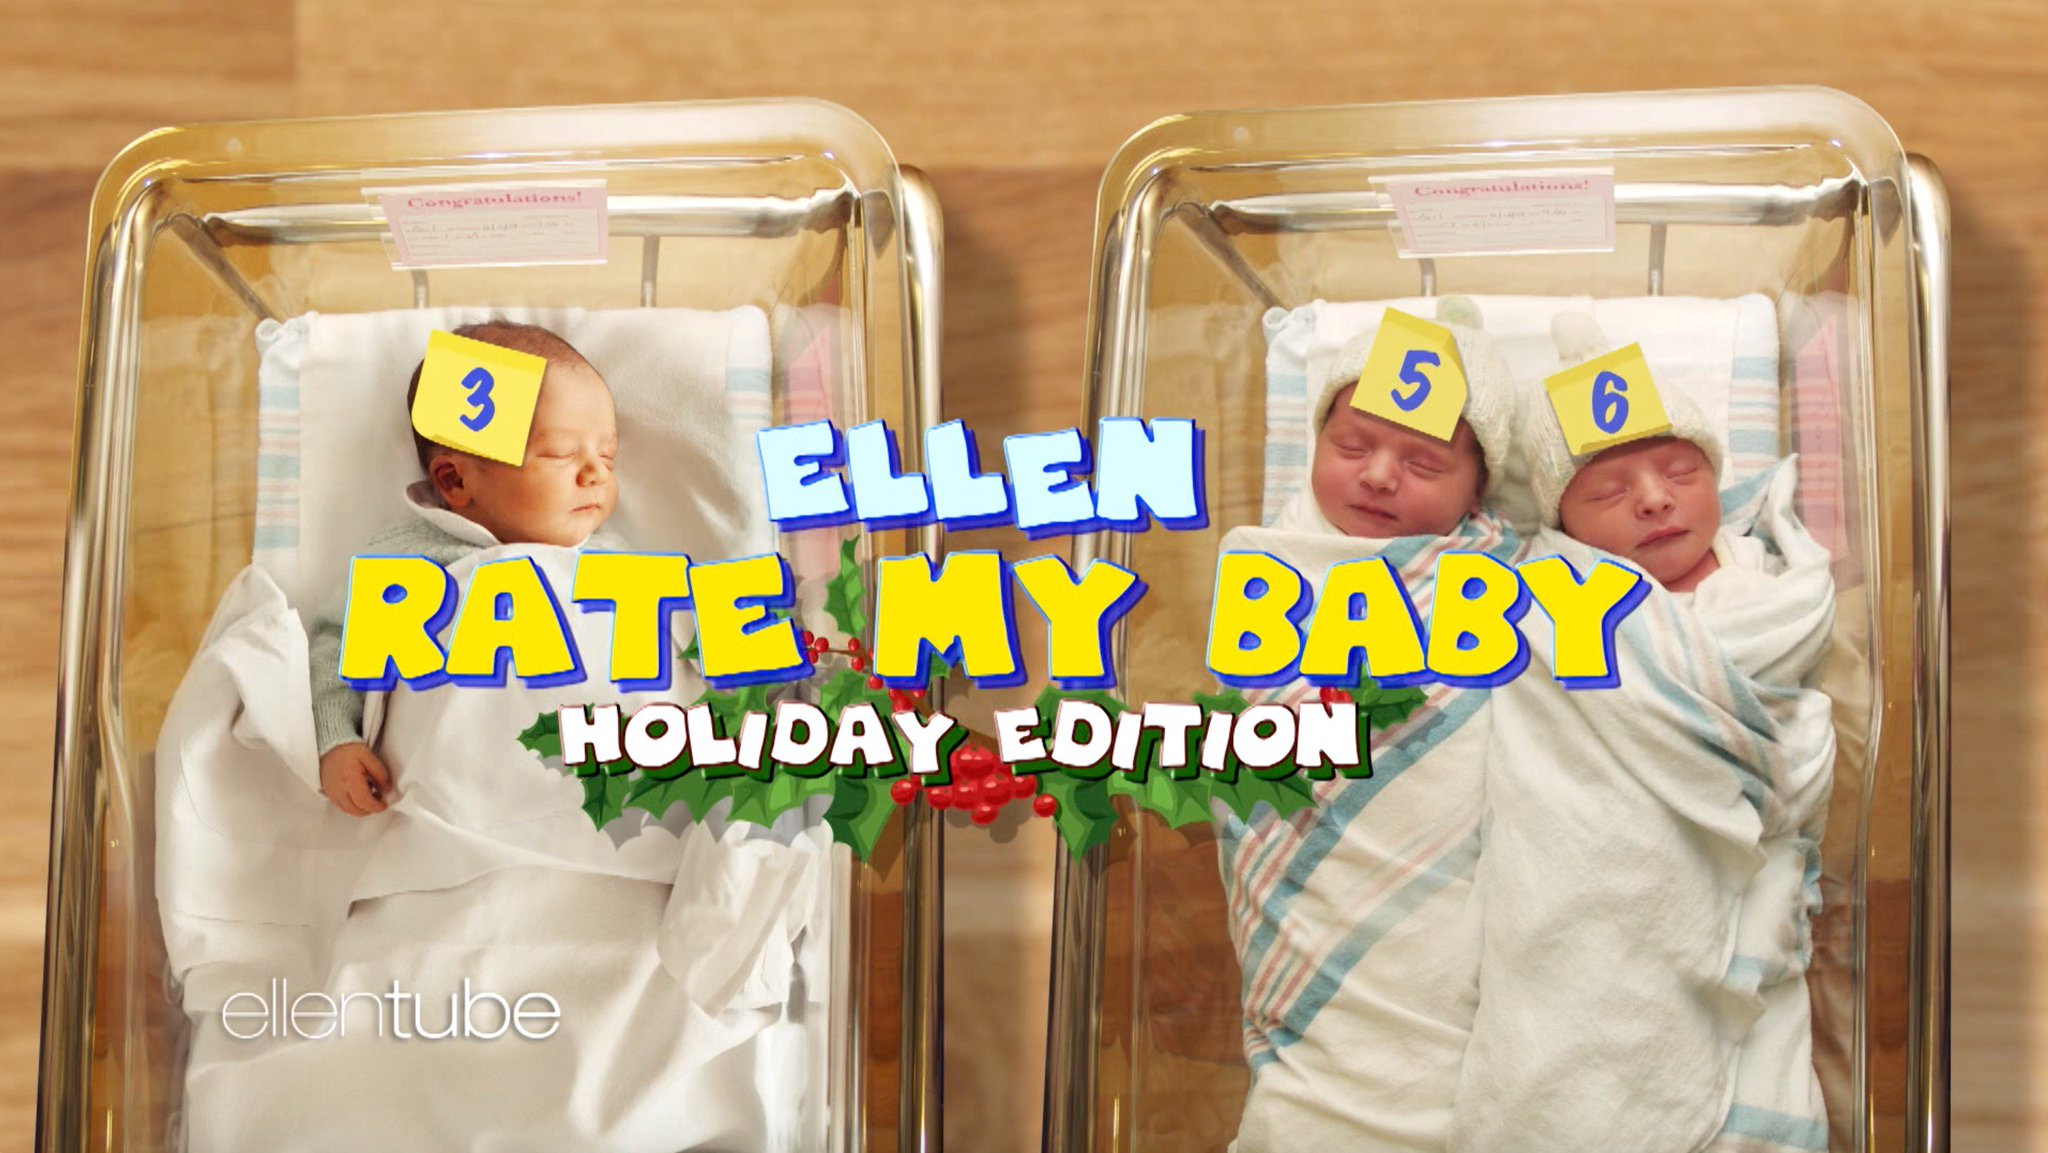 It's time for #EllenRateMyBaby, Holiday Edition. https://t.co/ekUCVxN1OM